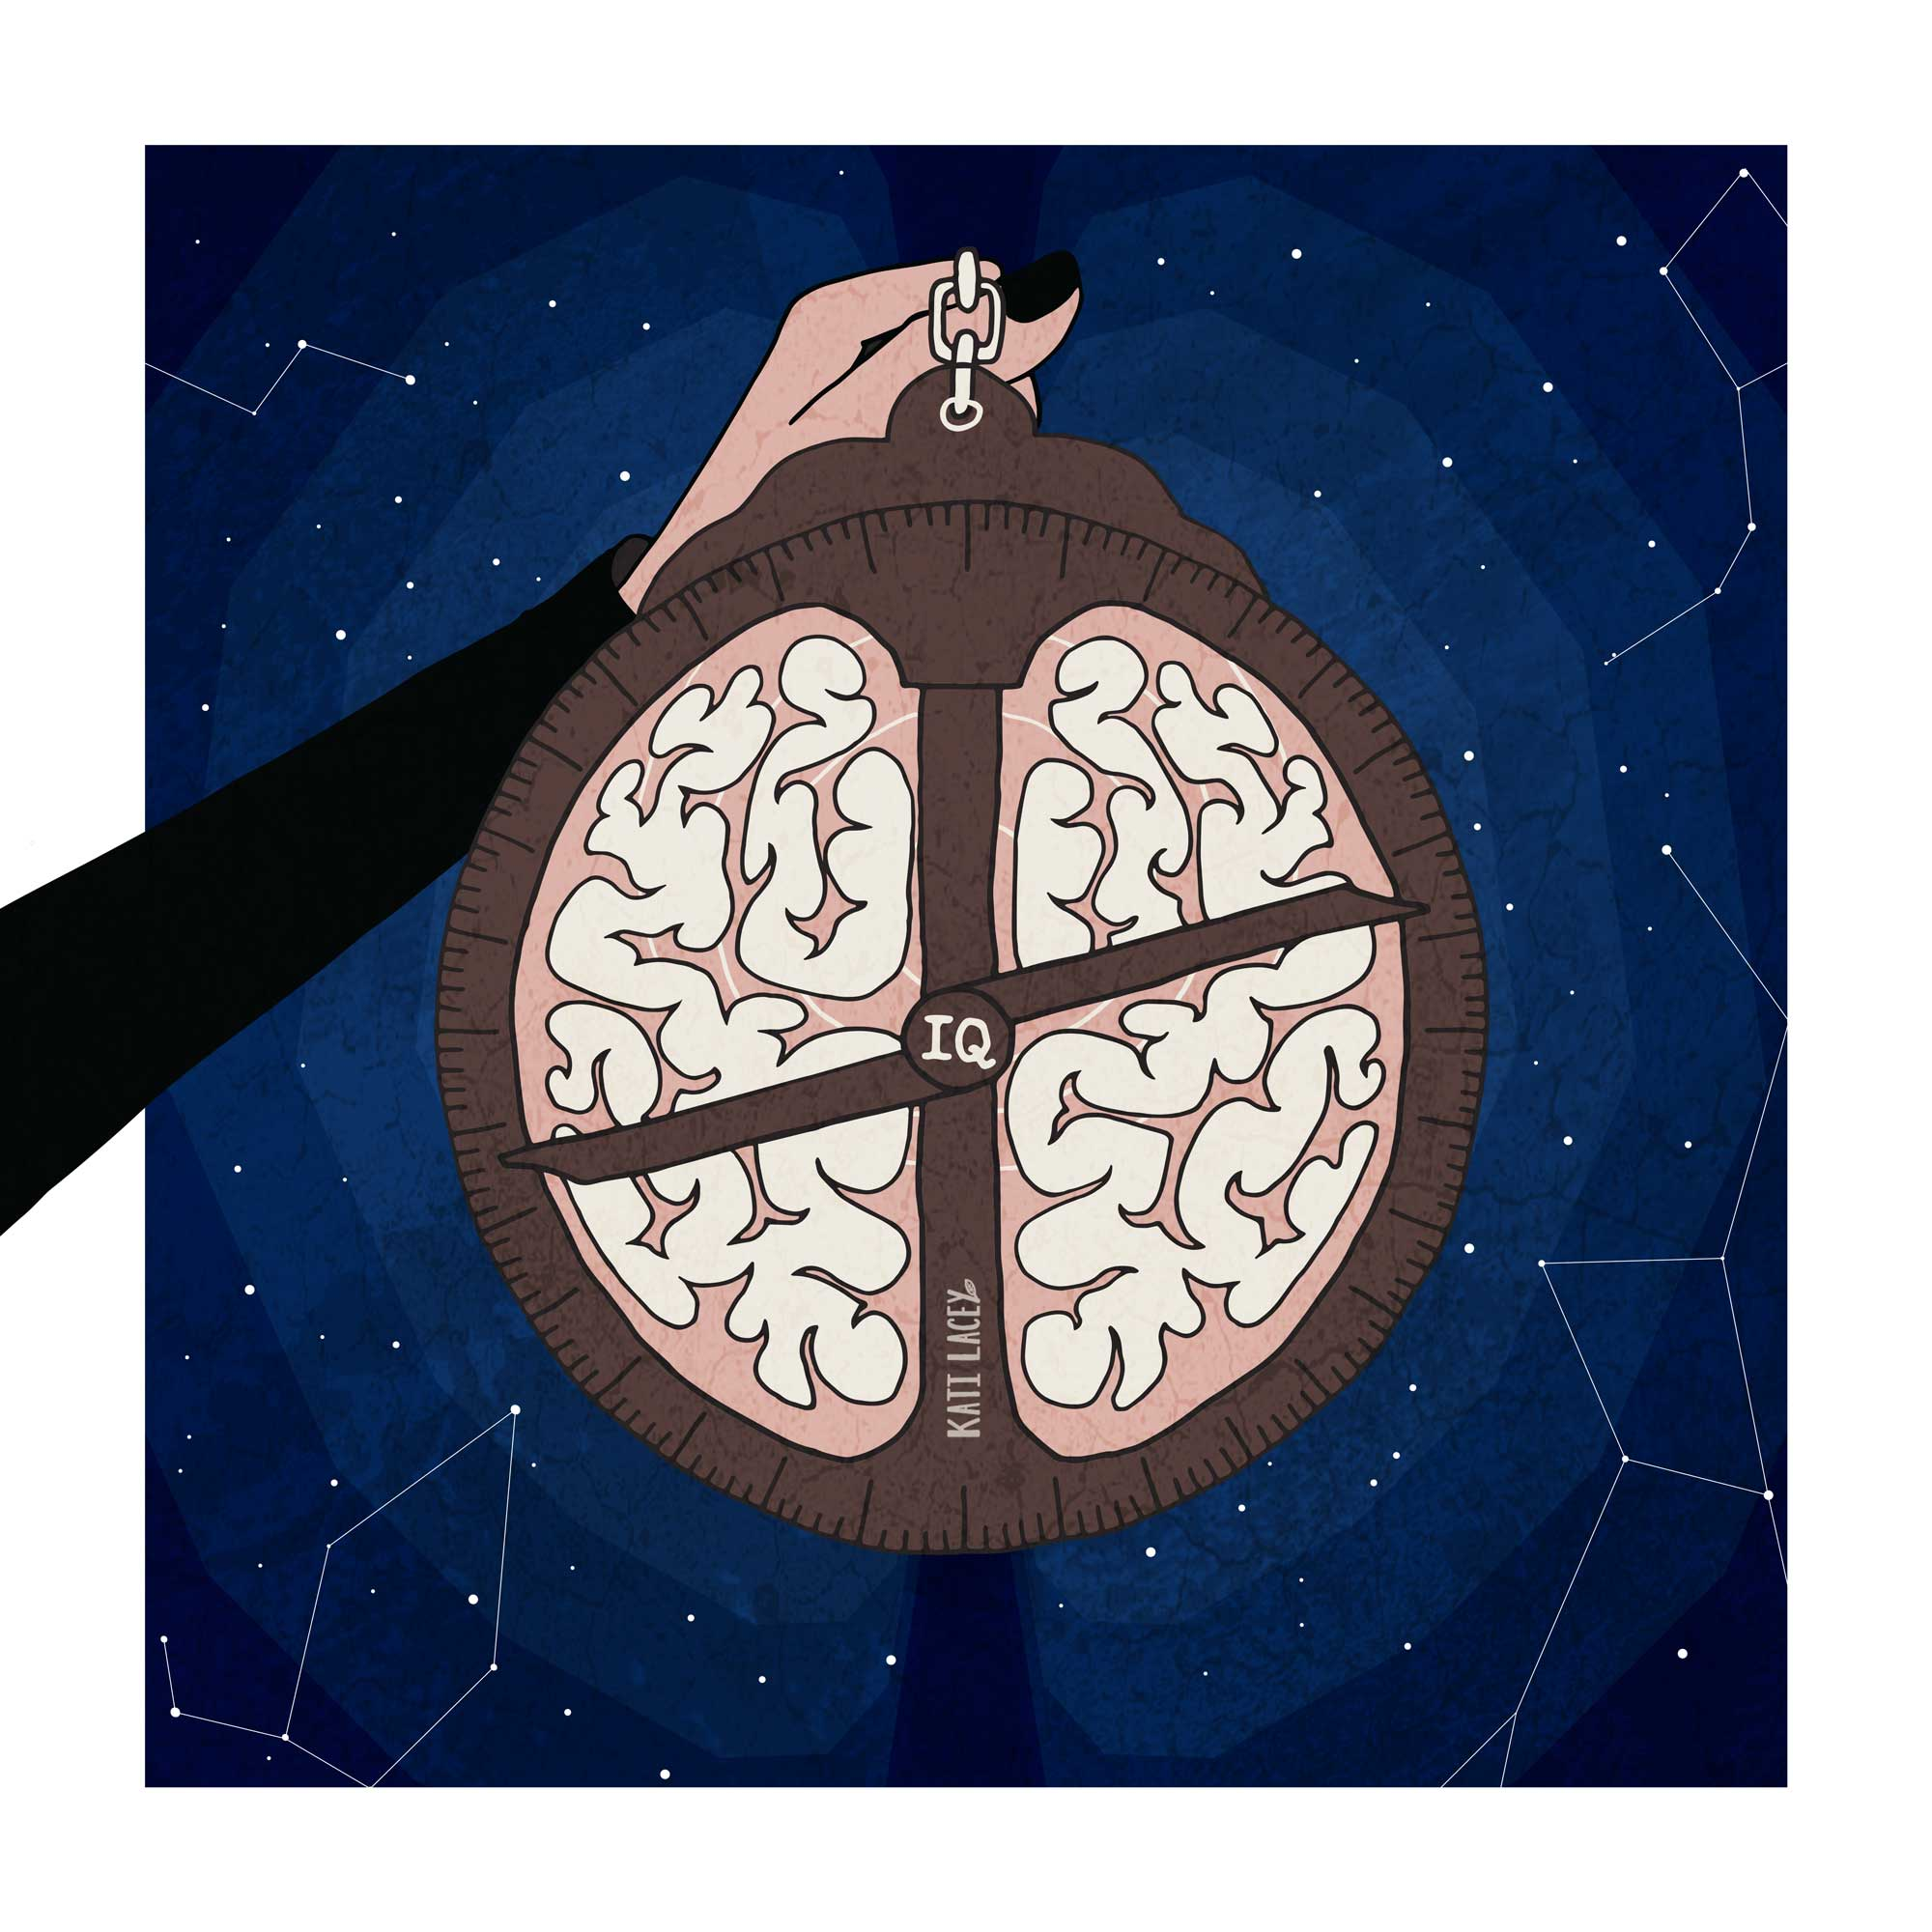 brain-astrolabe-navitaional-tool-editorial-illustration-illustrtator-Kati-Lacey